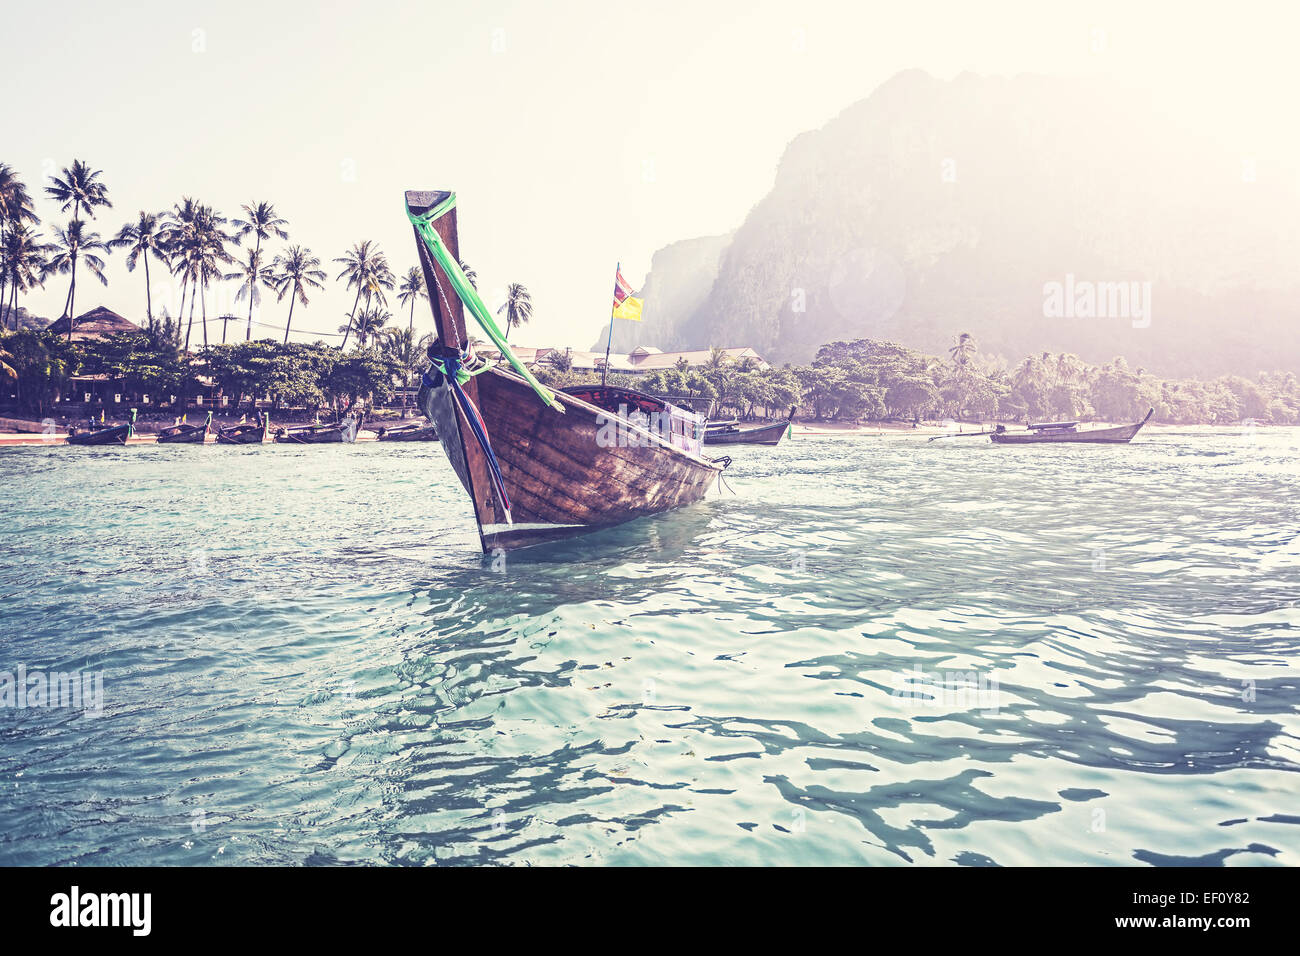 Retro filtered picture of boat and tropical island. - Stock Image